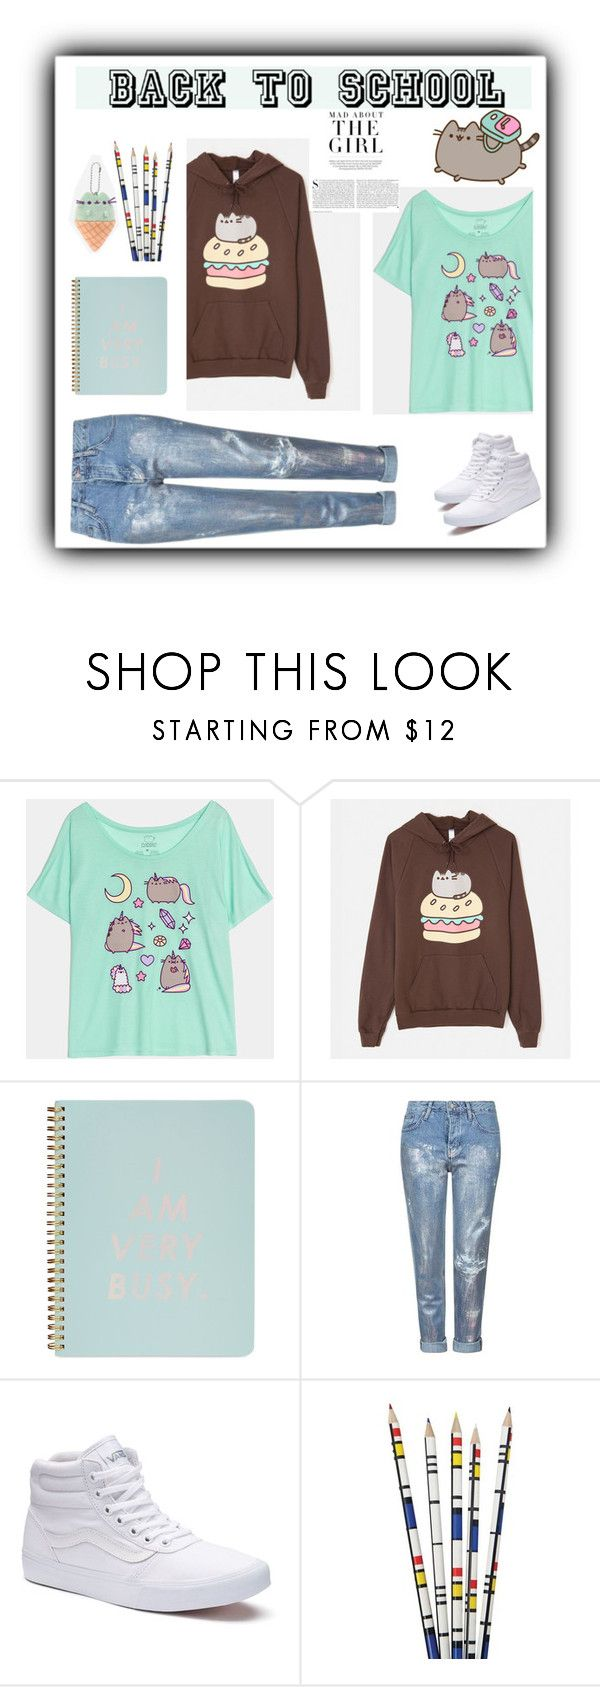 """""""#PVxPusheen"""" by pamela-802 ❤ liked on Polyvore featuring Pusheen, ban.do, Topshop, Vans, Chronicle Books, Kershaw, contestentry and PVxPusheen"""